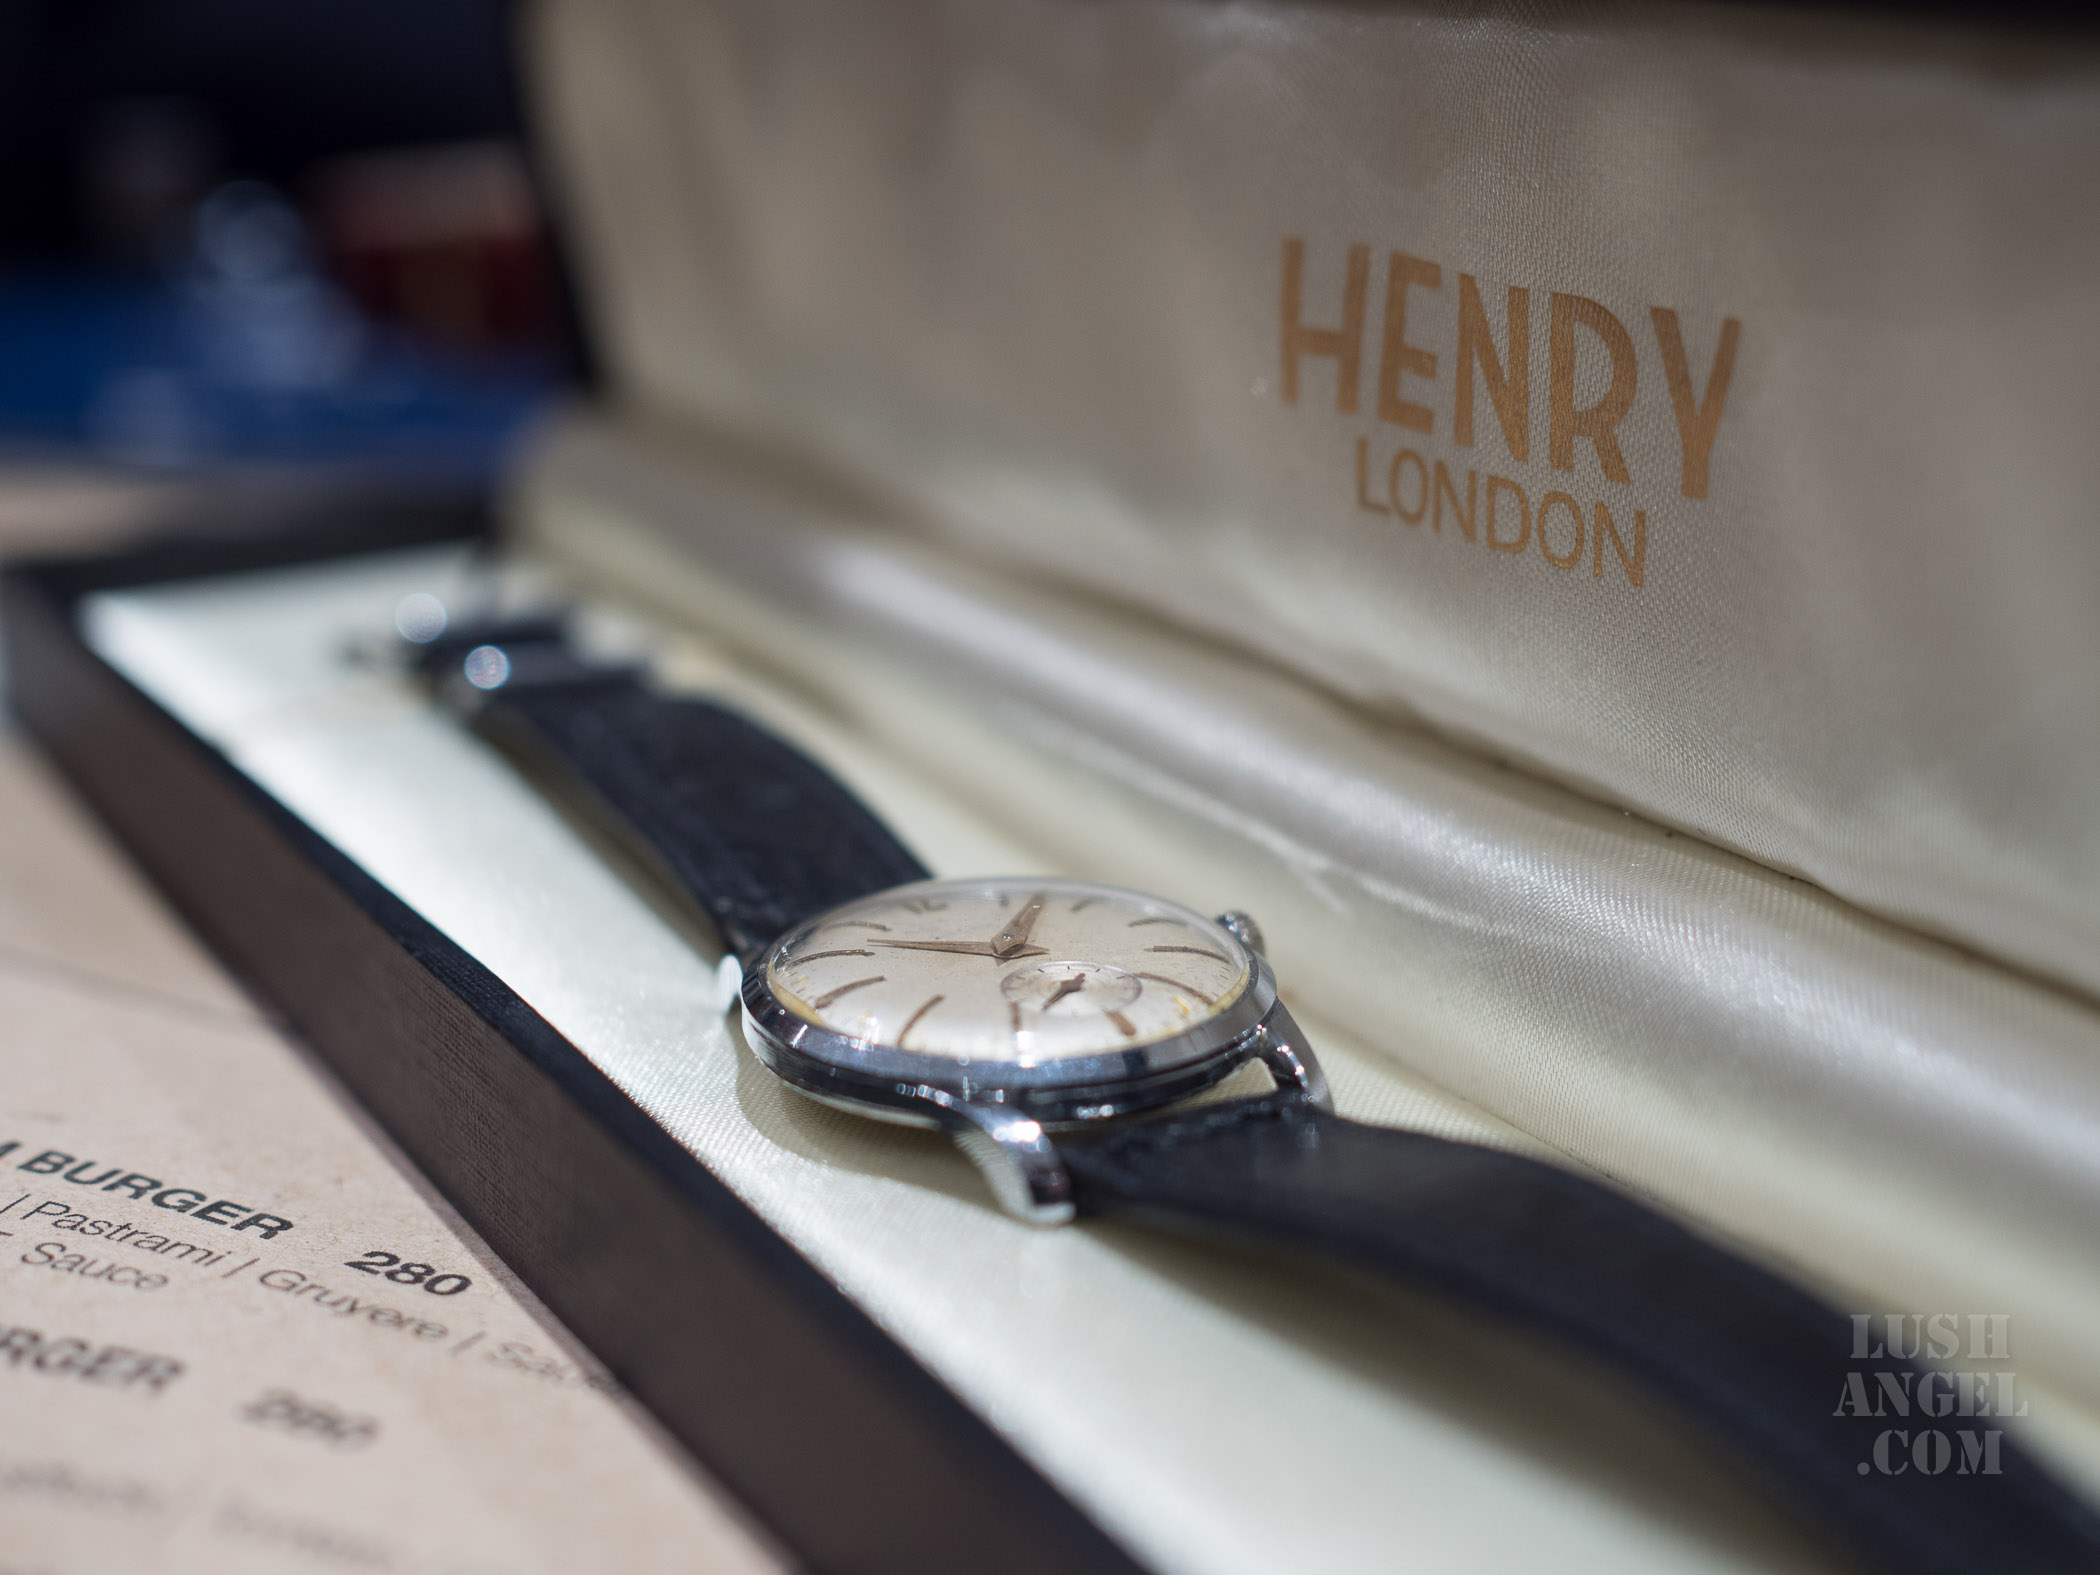 henry-london-vintage-watch